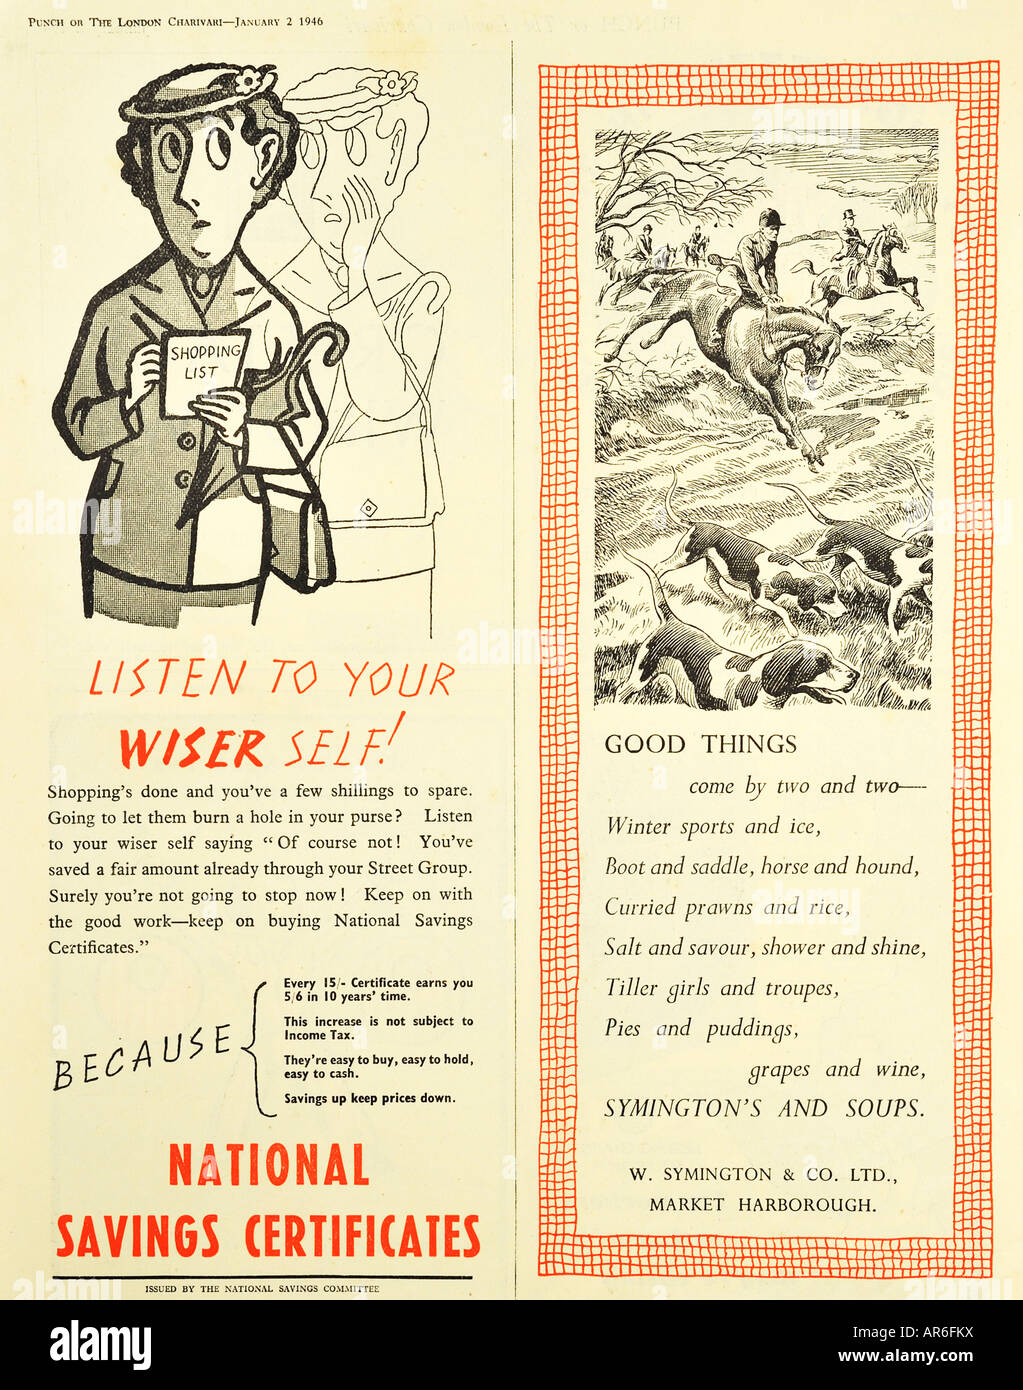 National savings certificates and symingtons soups advertisements national savings certificates and symingtons soups advertisements from 1946 for editorial use only 1betcityfo Choice Image